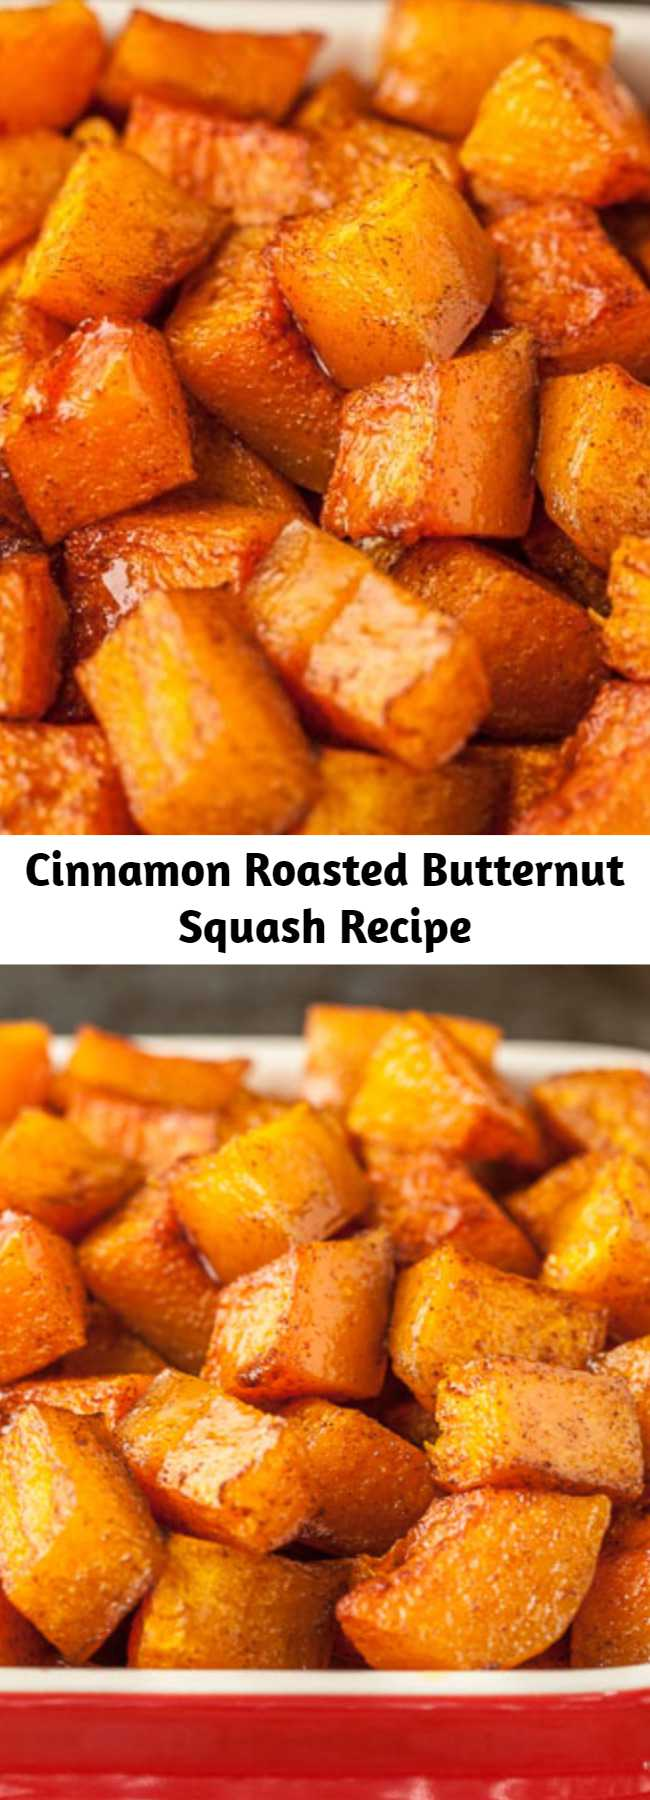 Cinnamon Roasted Butternut Squash Recipe - This Cinnamon Roasted Butternut Squash is the perfect side dish for your fall/winter meals. It's fantastic as is, or tossed together in salads, soups, or rice bowls. Plus, they're a powerhouse of nutrition in every tasty bite!